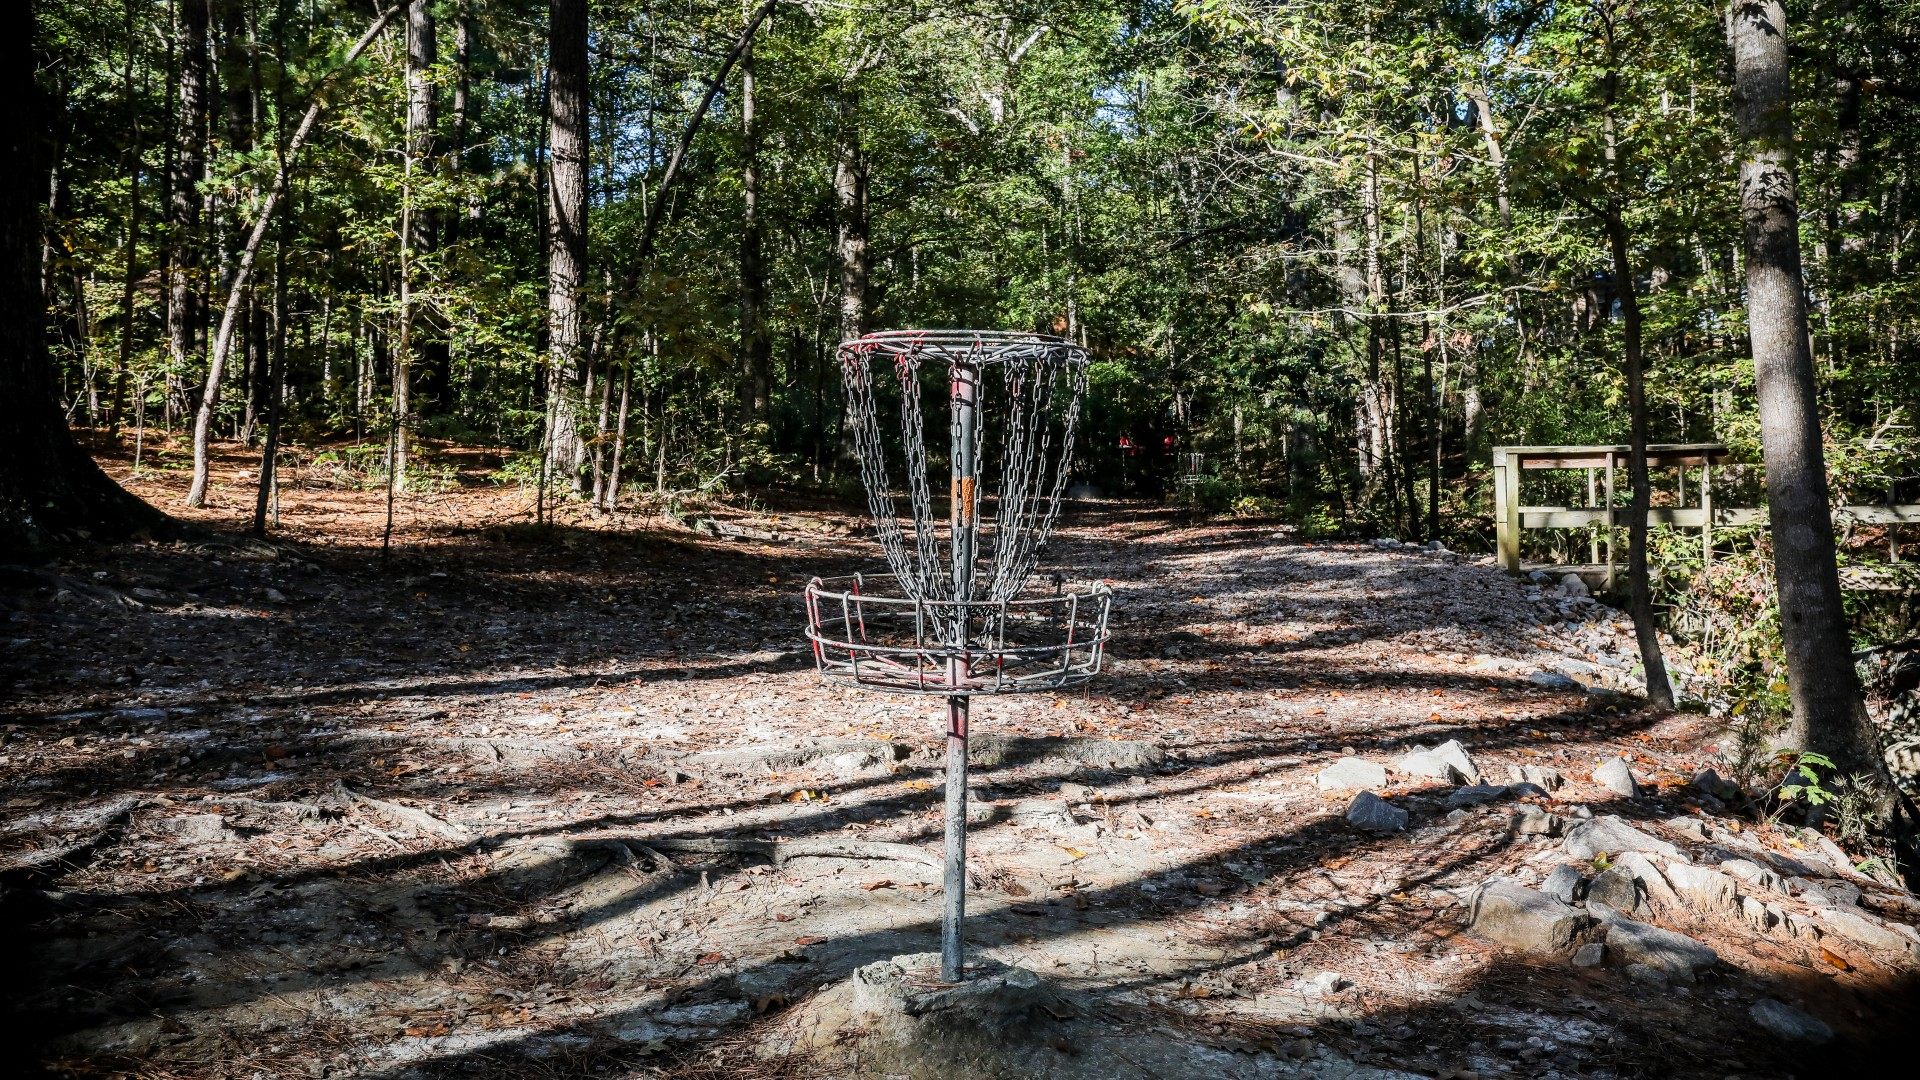 Part of the outdoor disc golf course at Kentwood Park